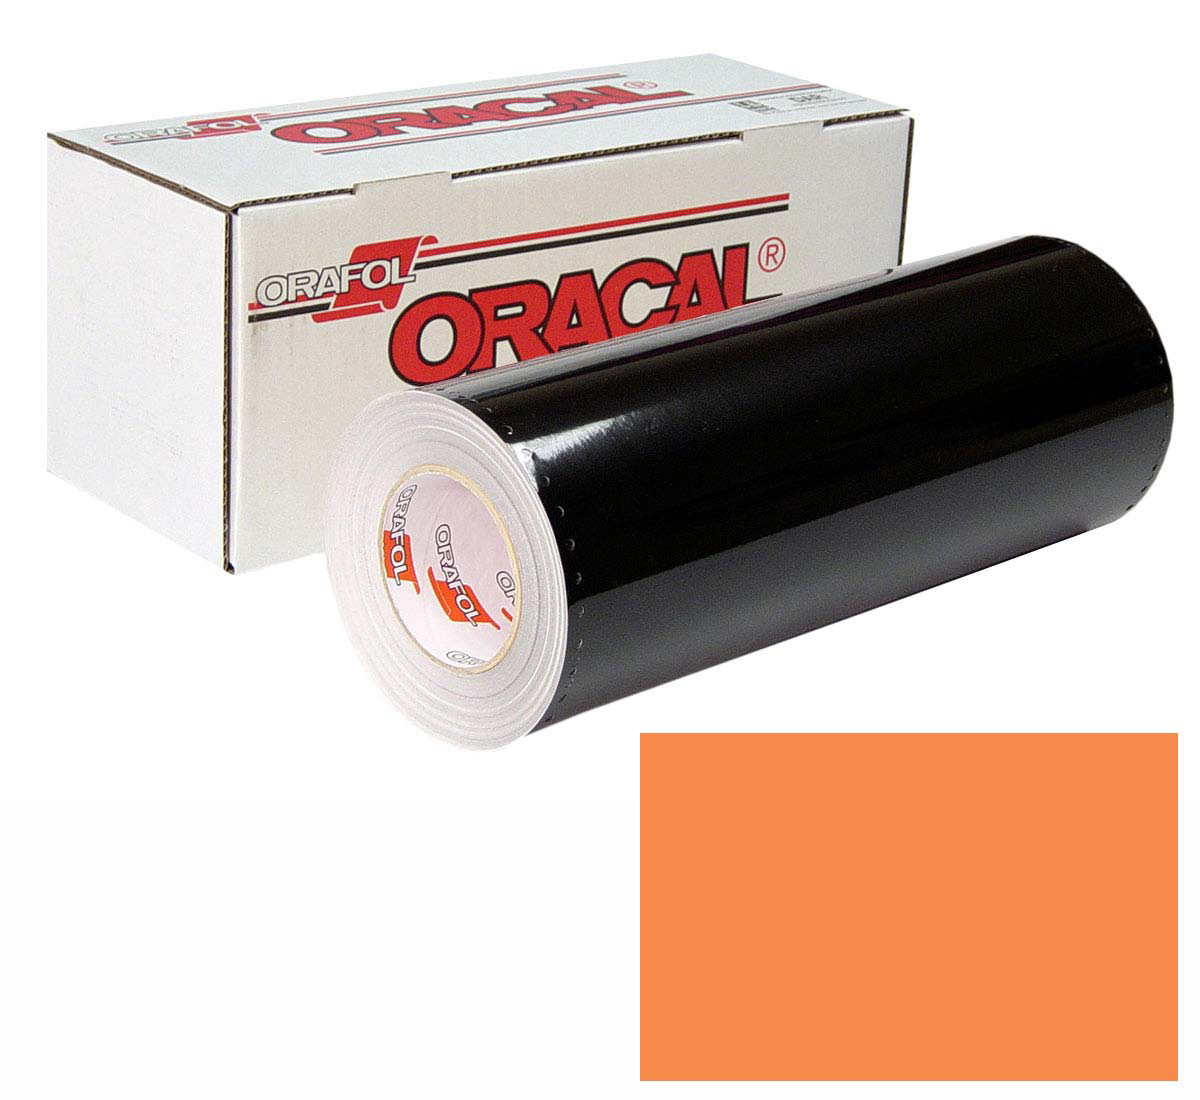 ORACAL 641 Unp 48In X 50Yd 036 Light Orange